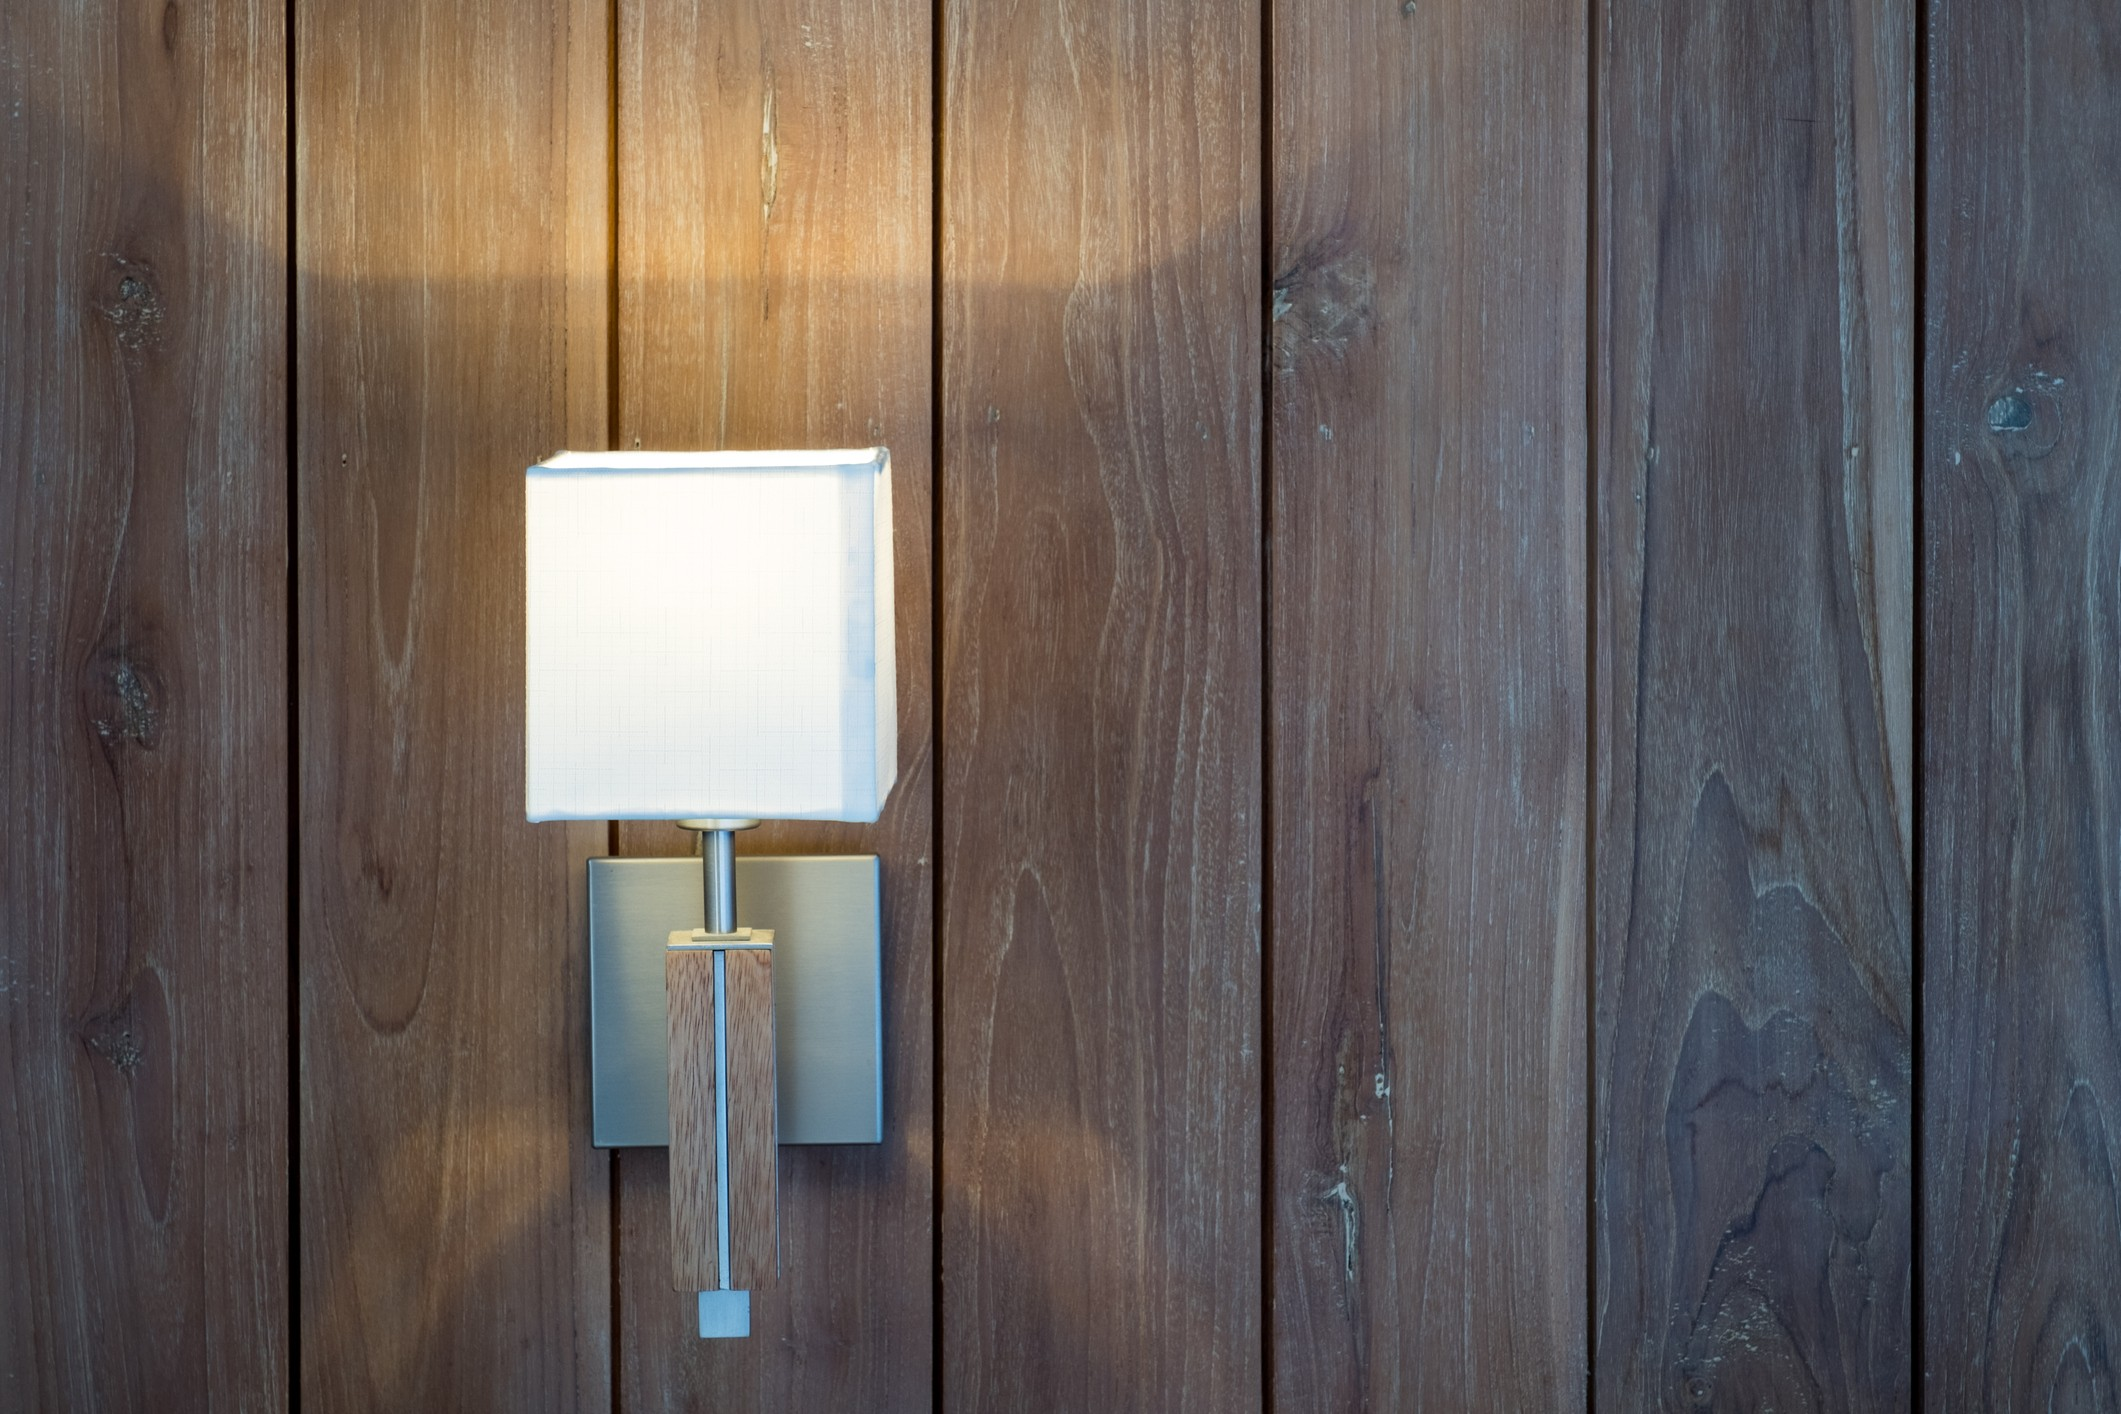 Square wall light on brown wood paneling